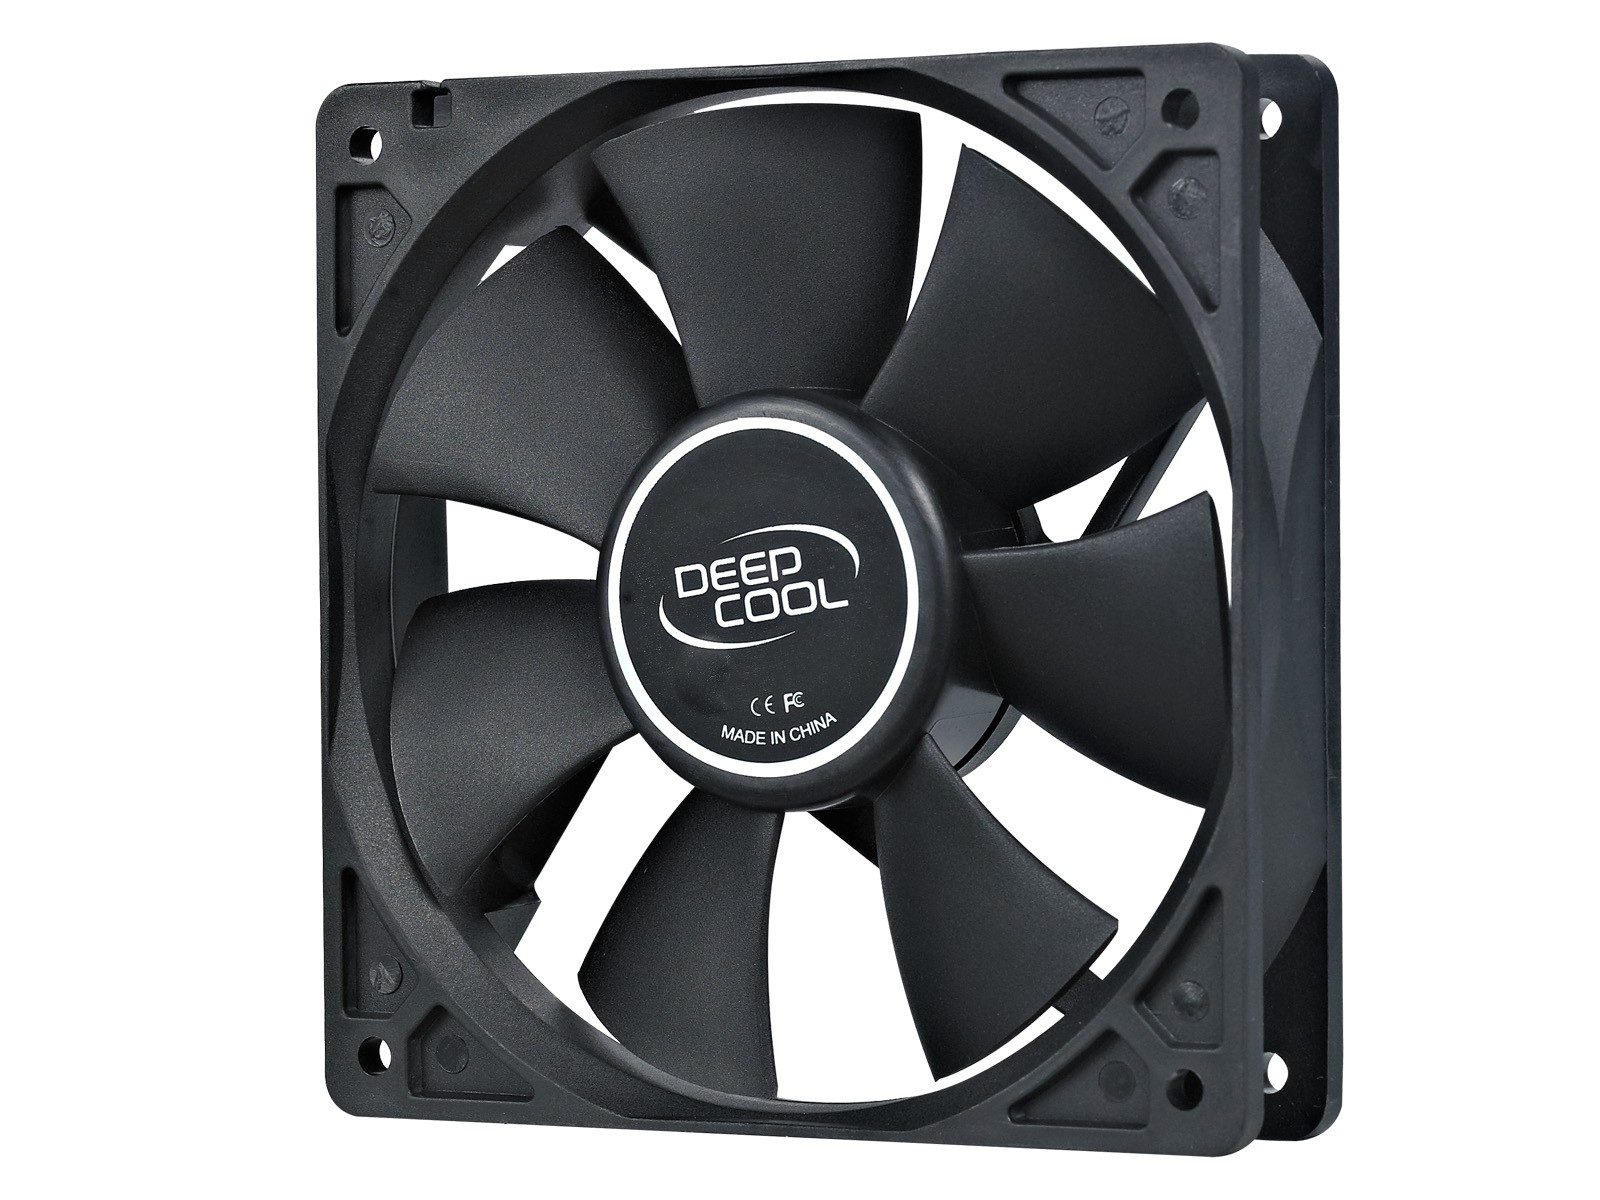 Вентилятор DeepCool XFAN 120 Black (120mm, для кор-са, 1300rpm, 23.7dBA, 3pin + Molex)